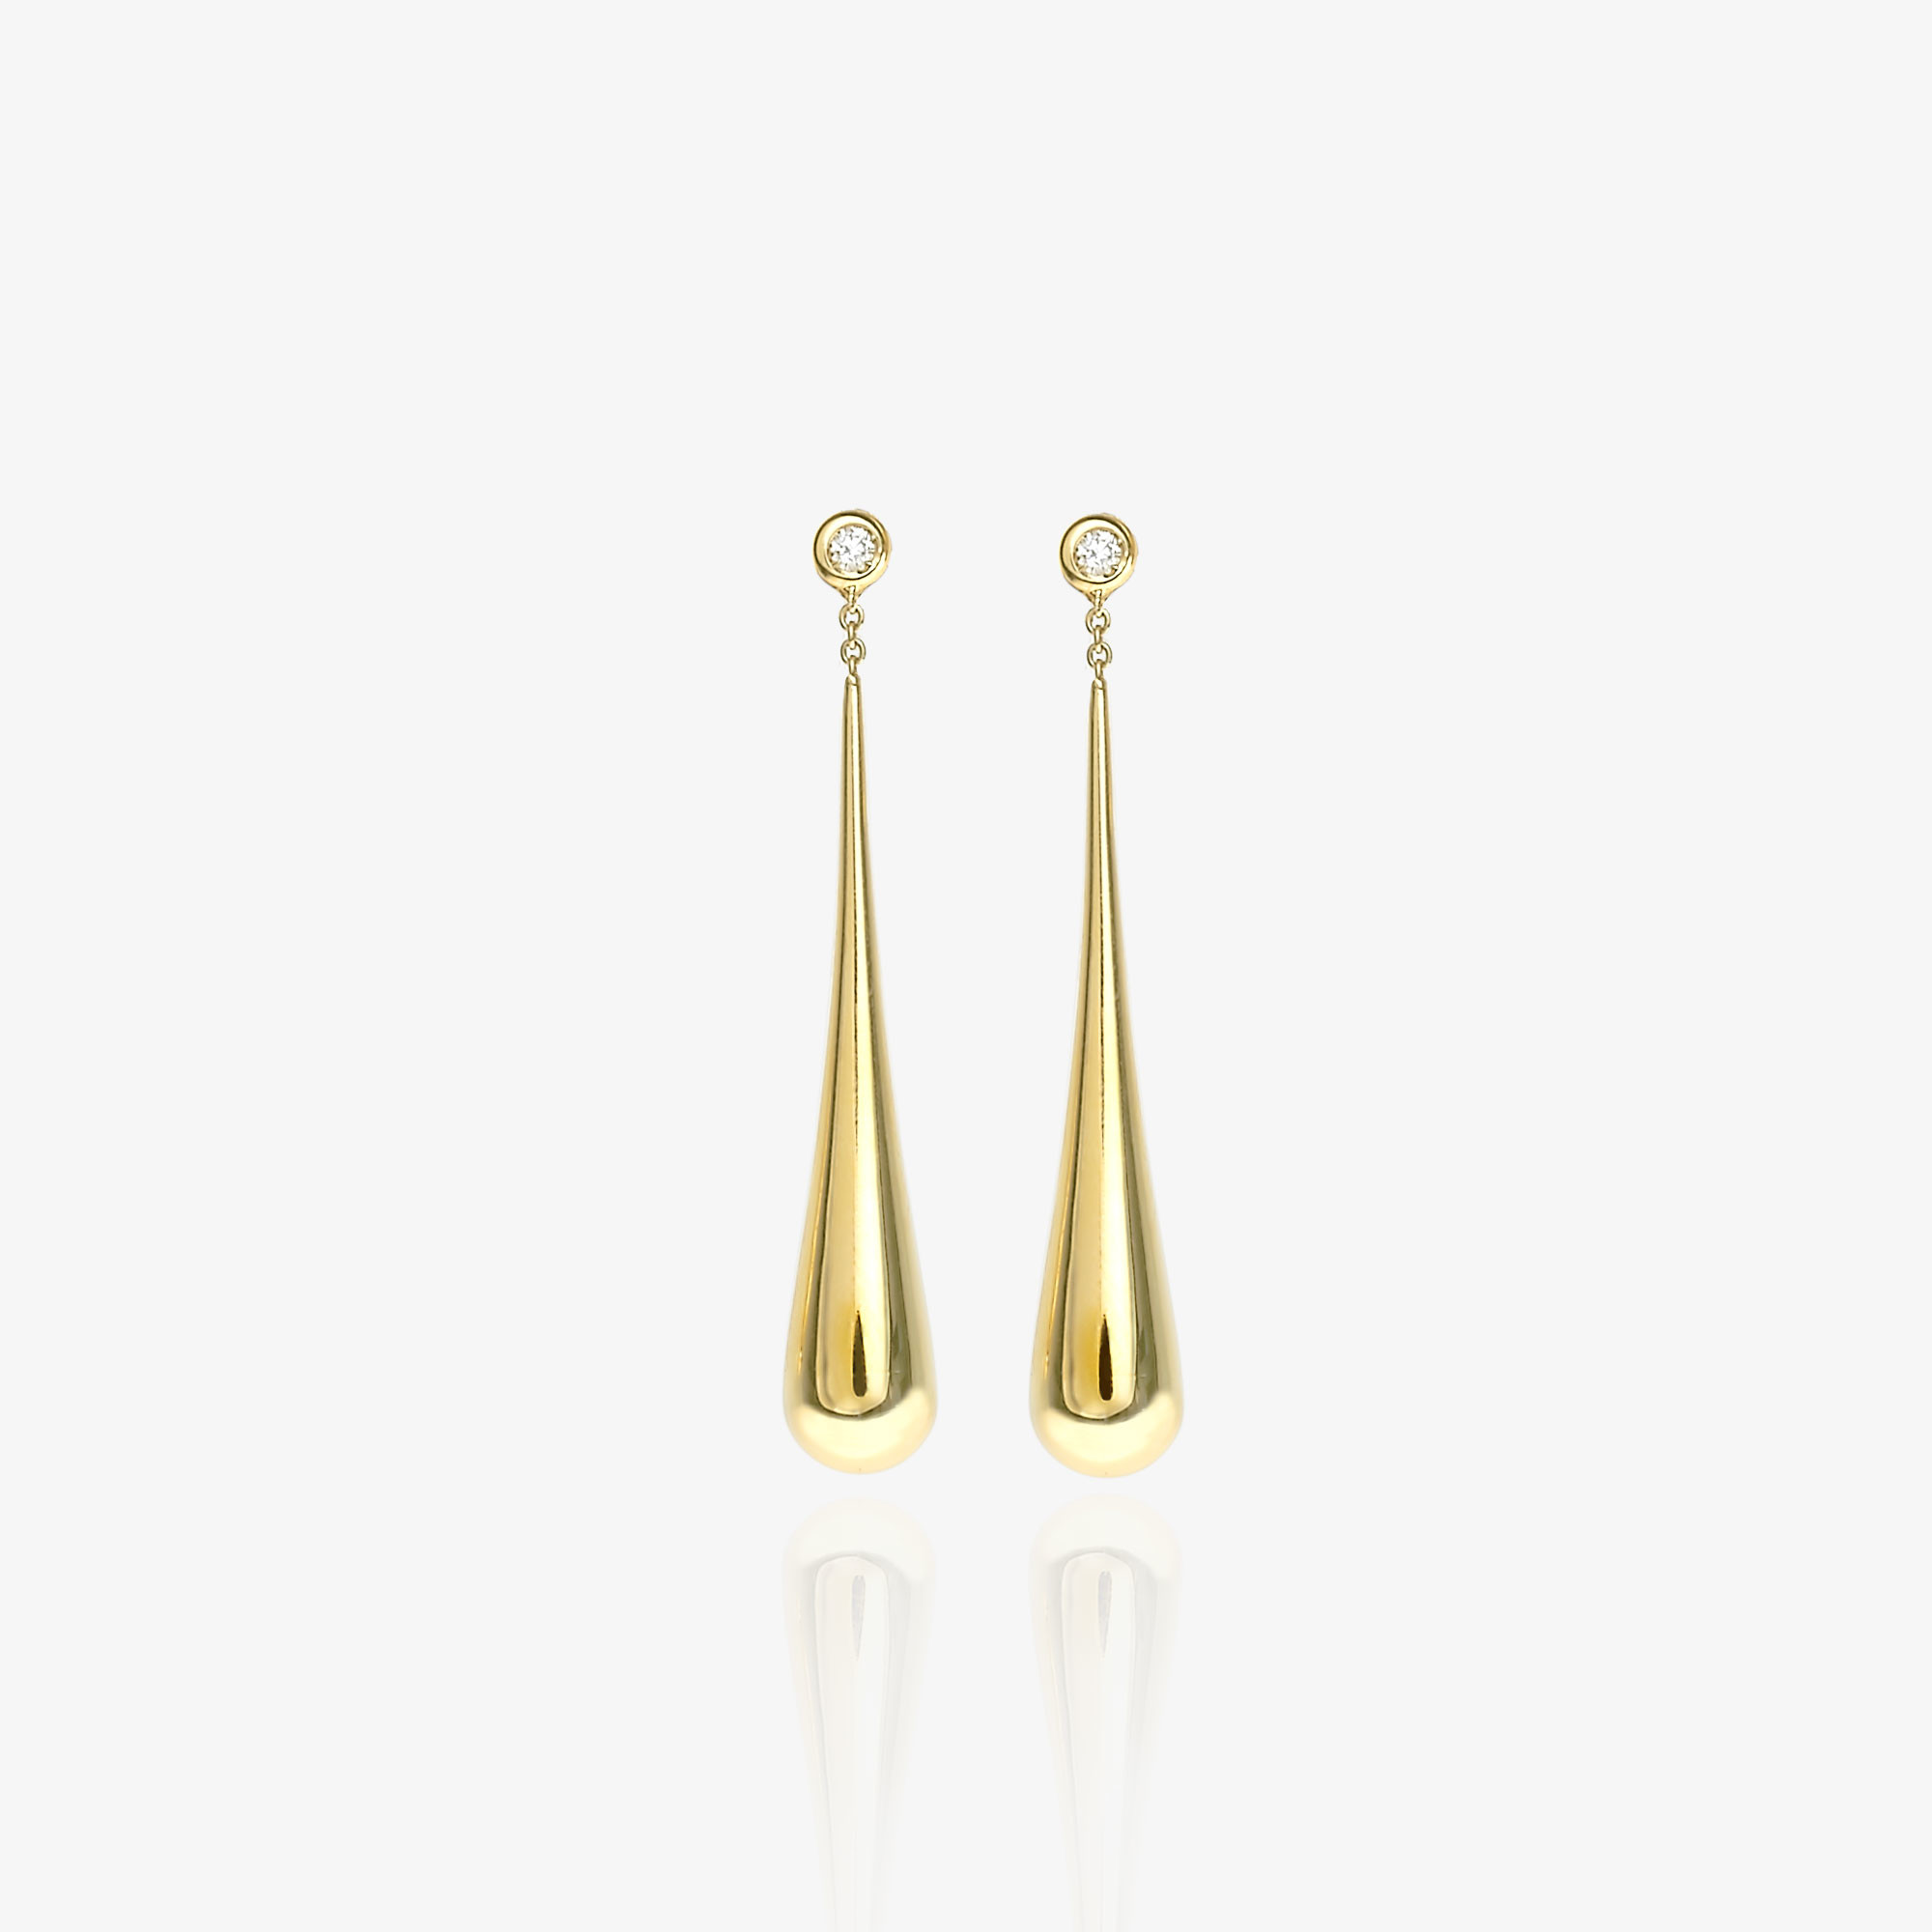 Drops of gold earrings